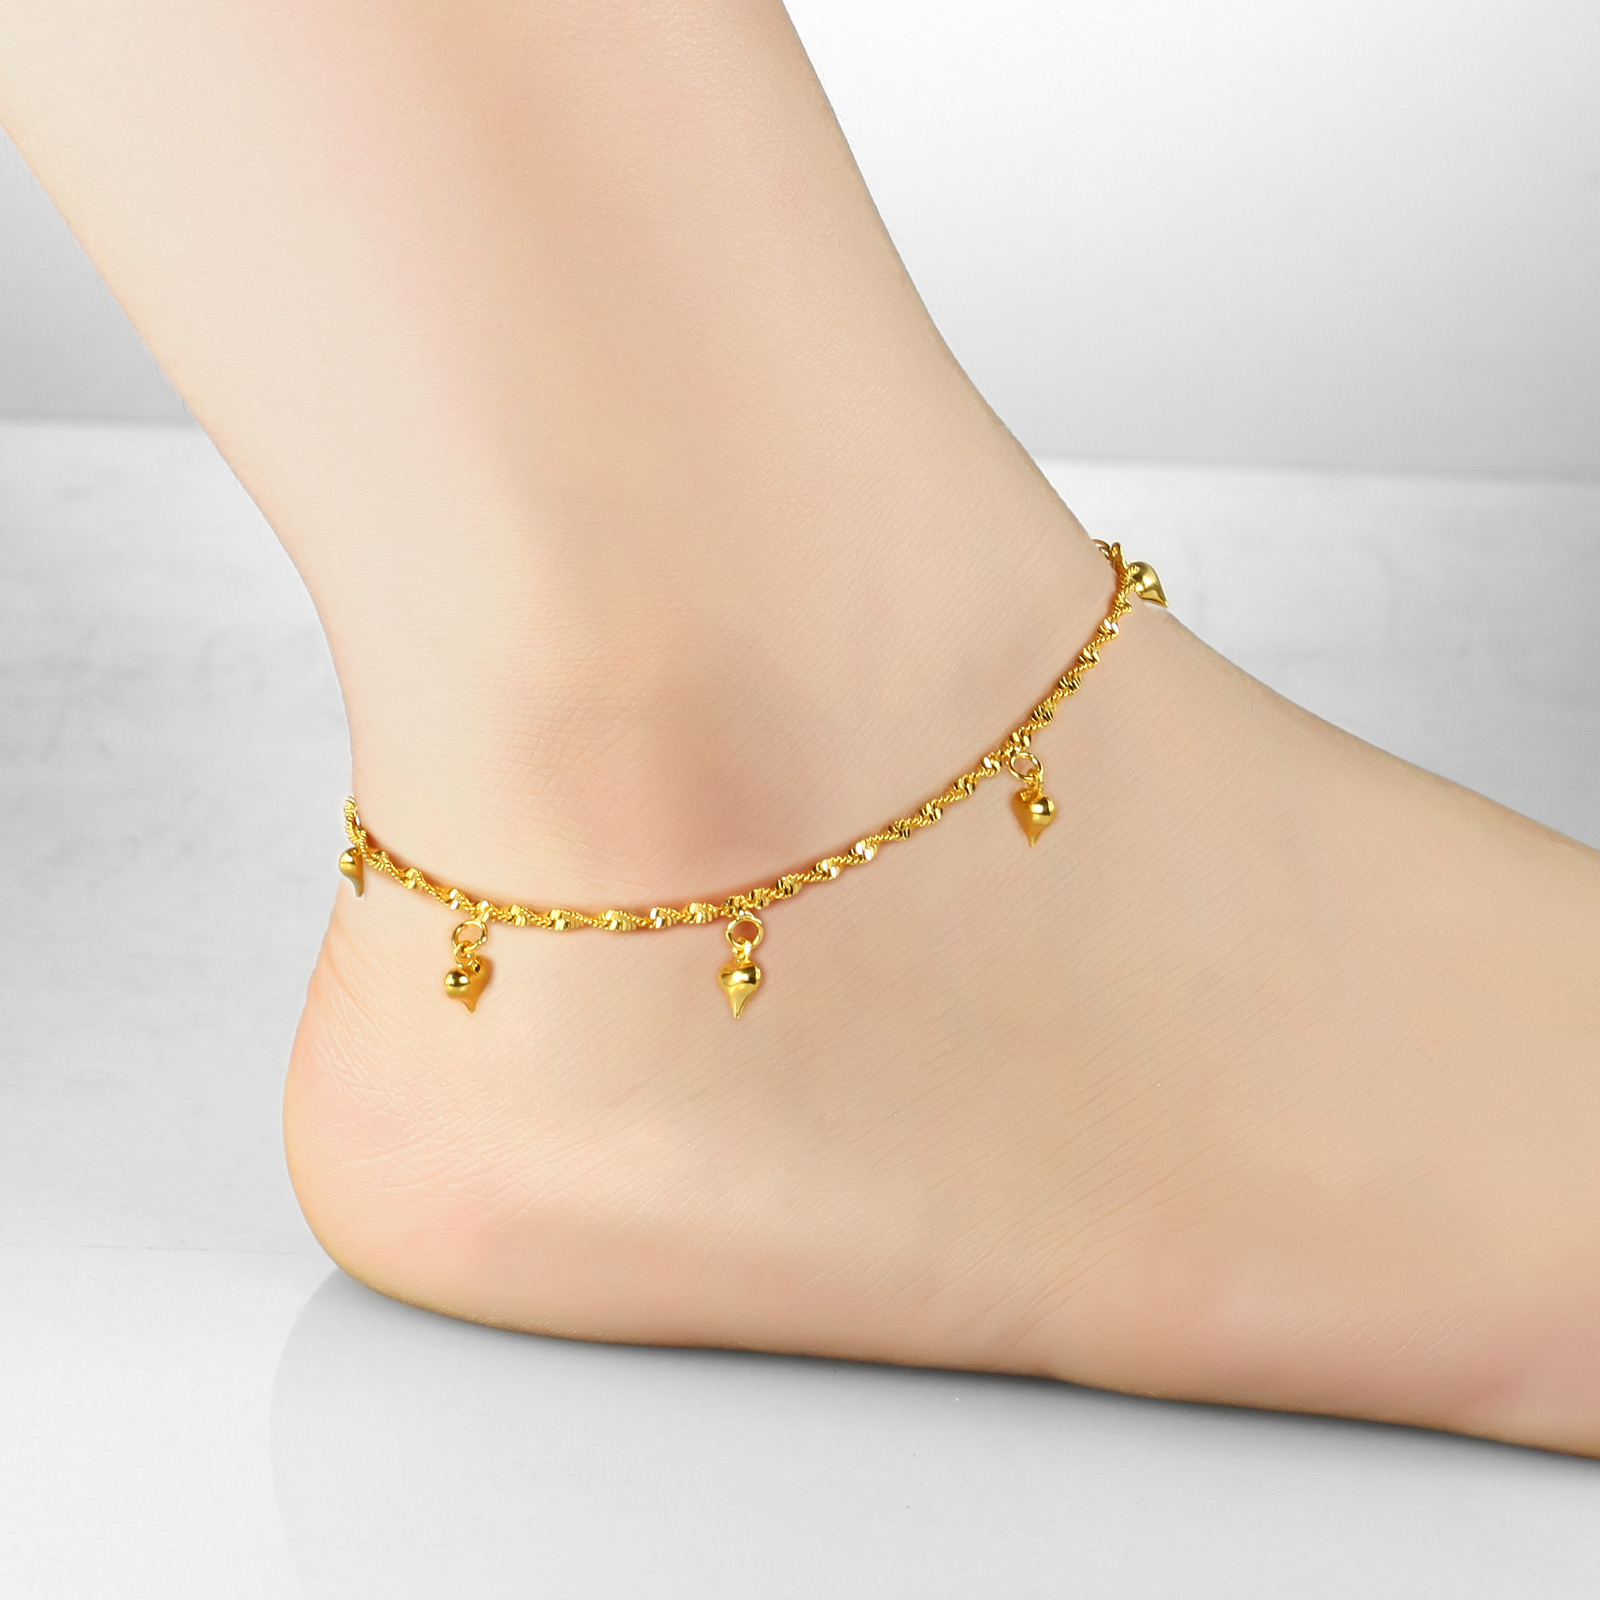 designer more chain dsc anklet views beads